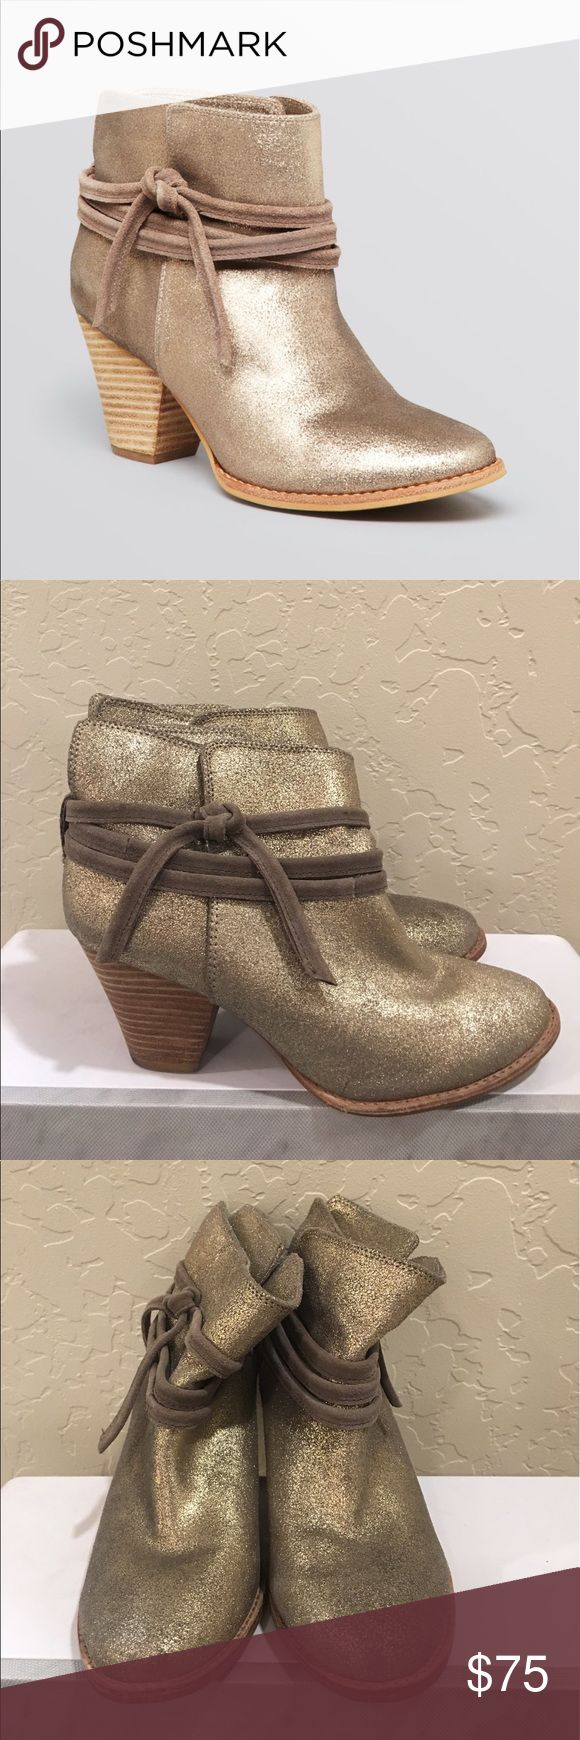 Gold Booties Splendid Gold booties || worn 2-3 times Splendid Shoes Ankle Boots & Booties